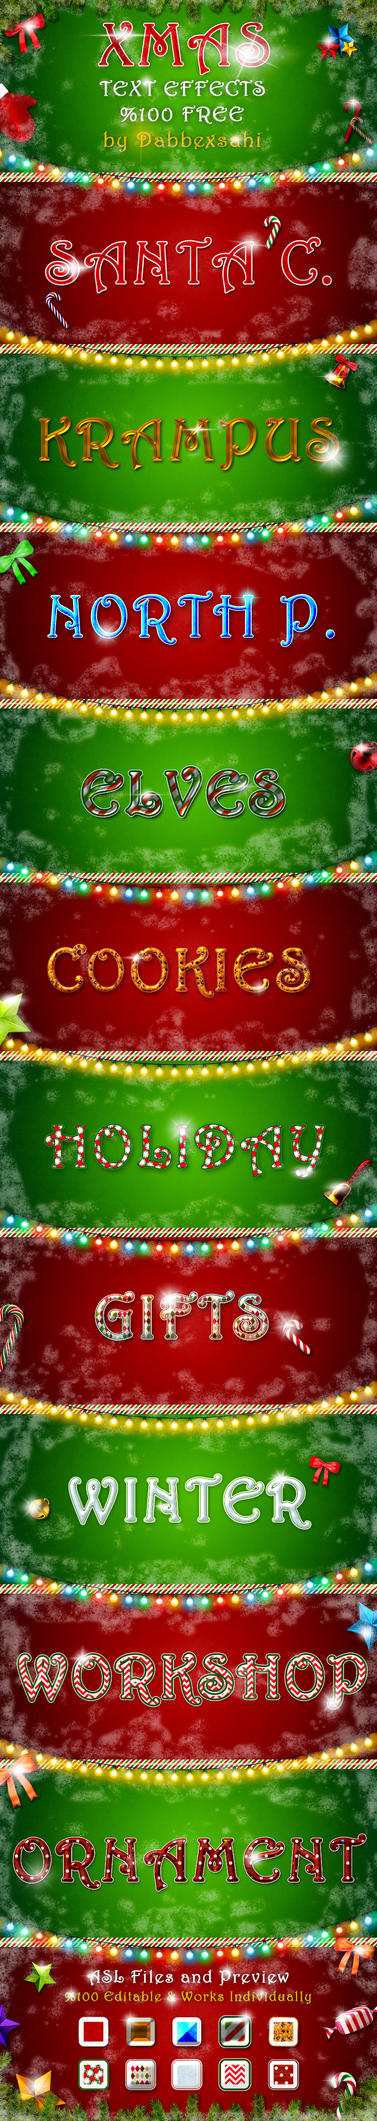 Xmas-text-effect-2015 by dabbex30